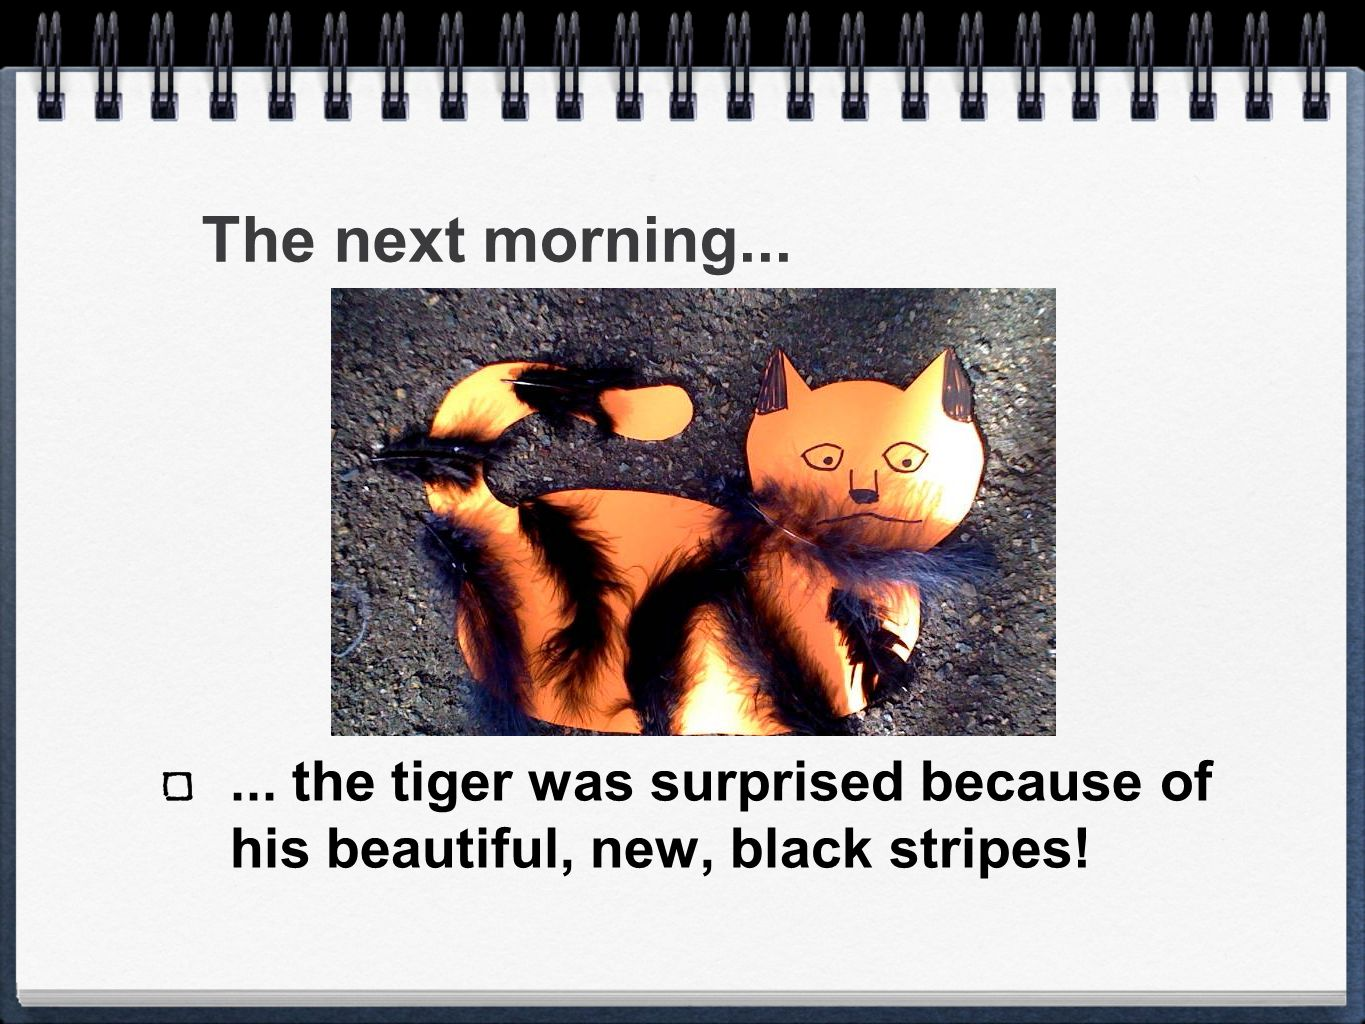 The next morning...... the tiger was surprised because of his beautiful, new, black stripes!